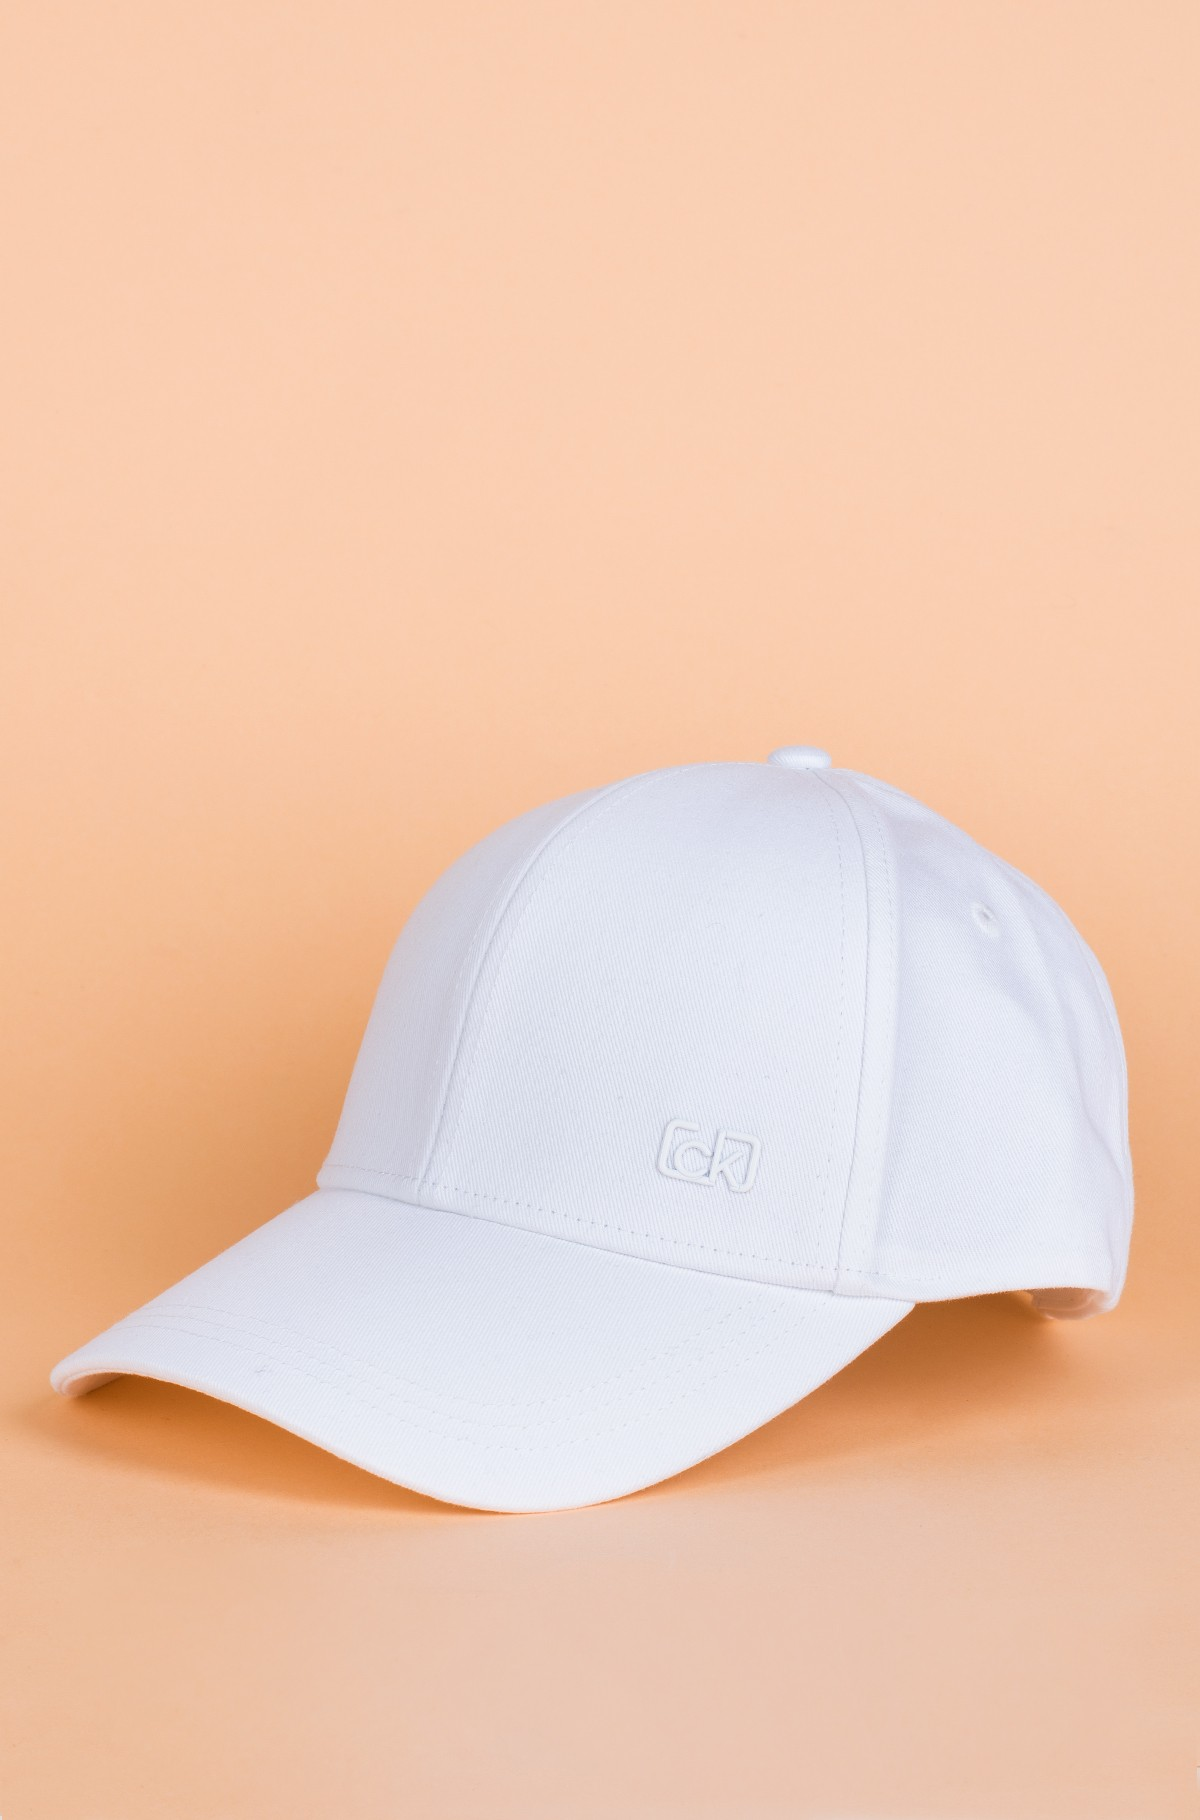 Nokamüts CK SIGNATURE SIDE LOGO BB CAP-full-1